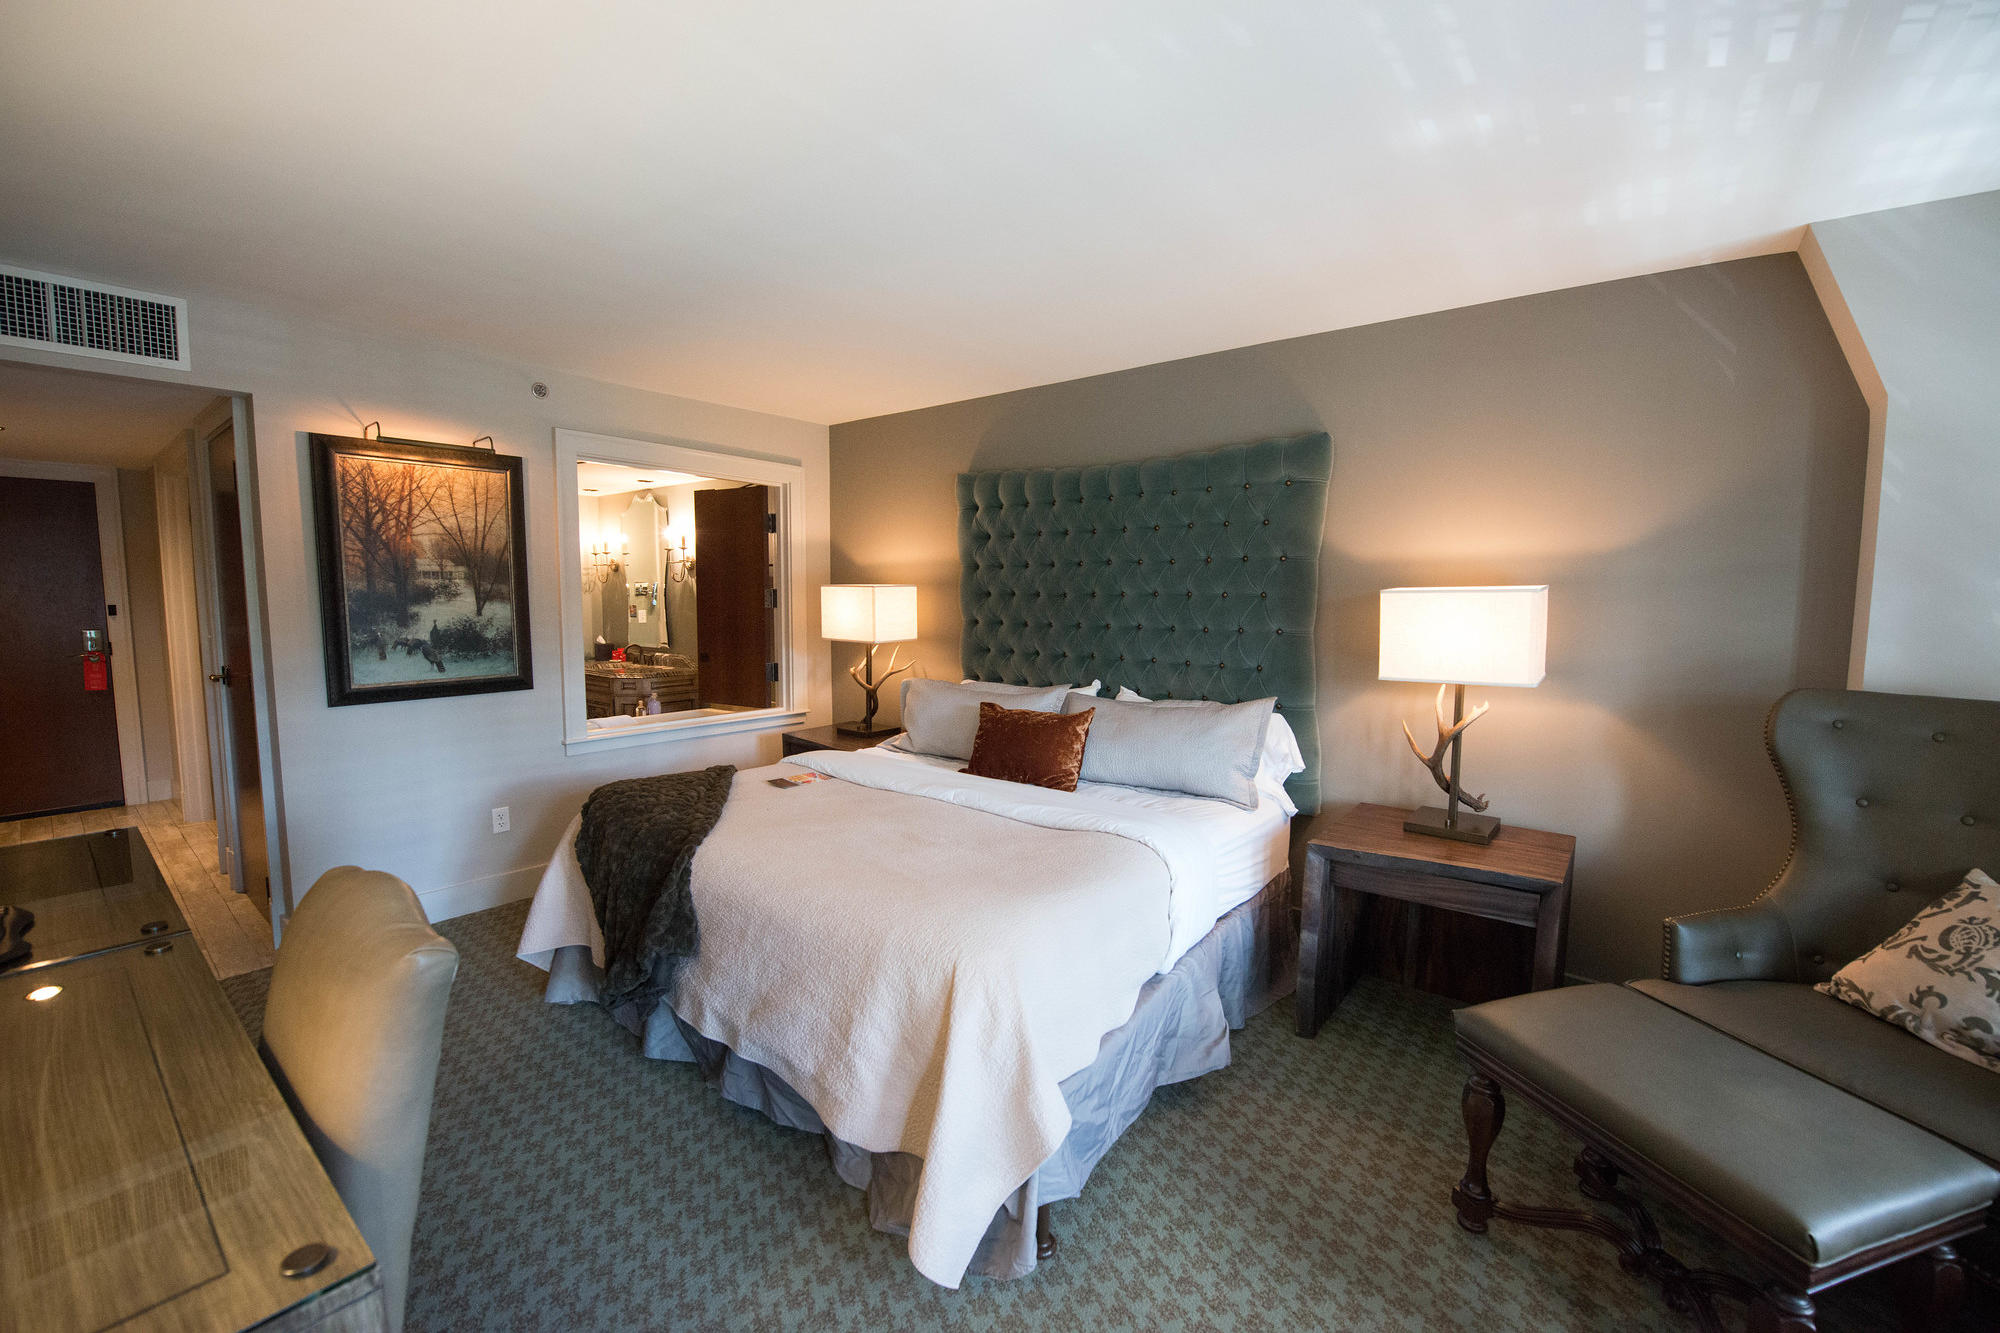 The Deluxe King Room at the Grand Bohemian Asheville